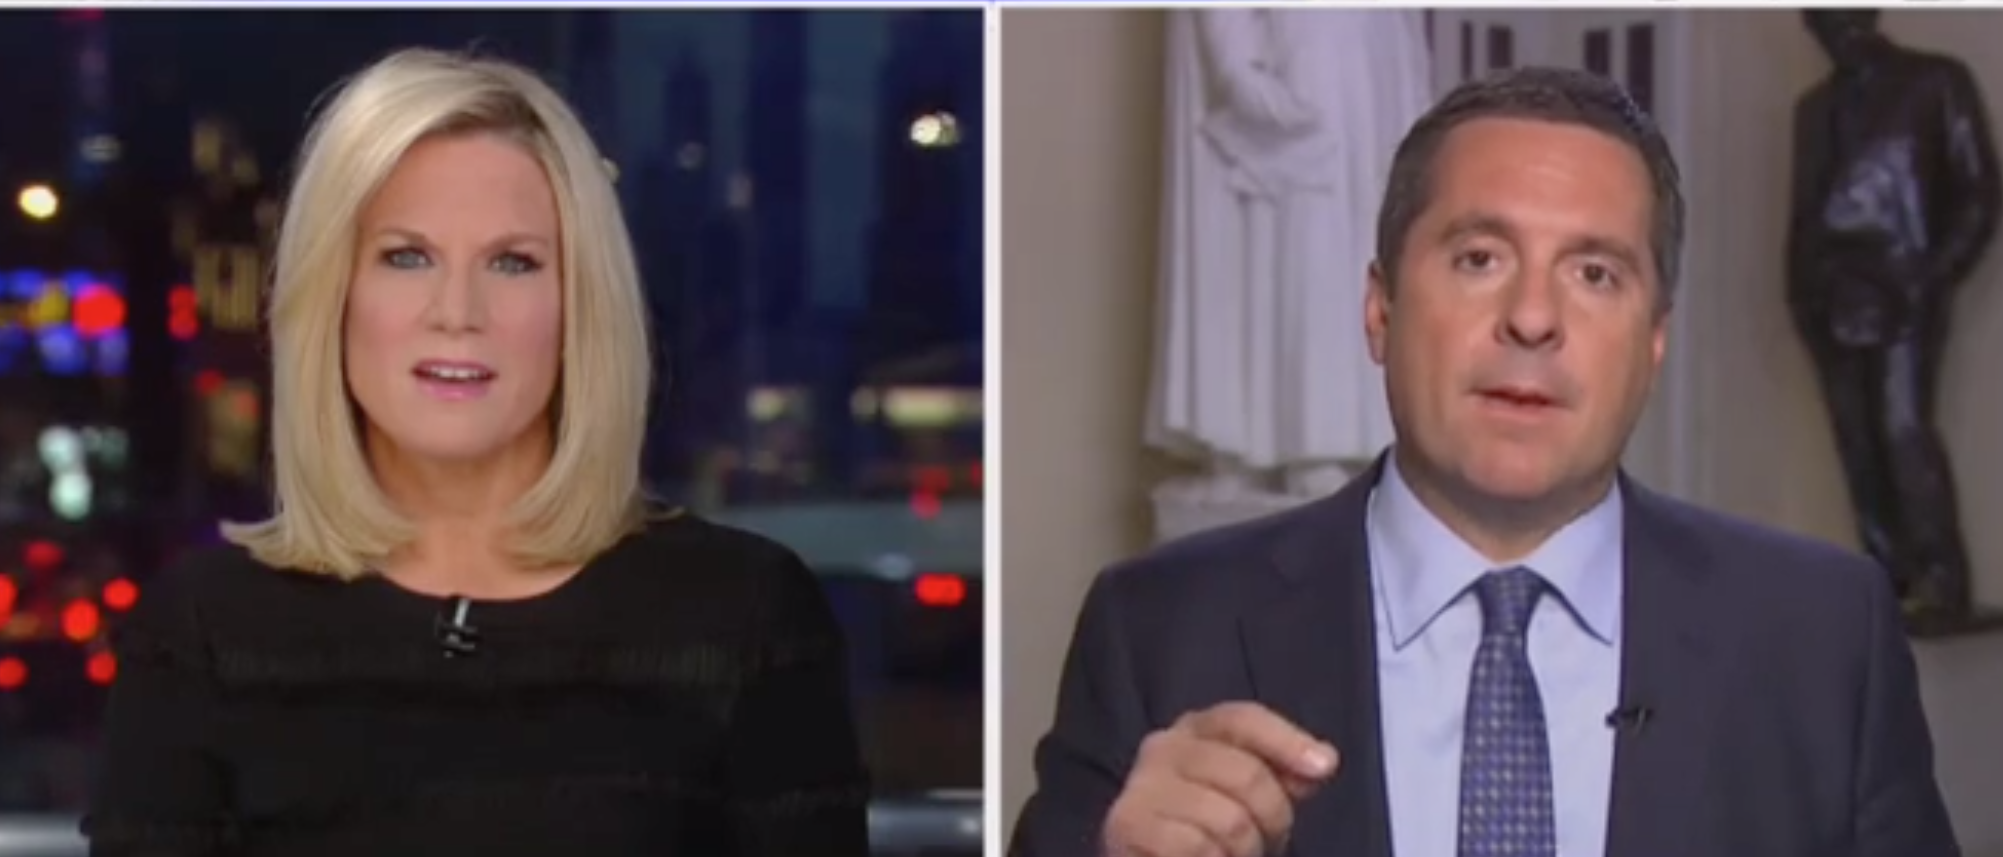 'They Are Playing With Fire': Devin Nunes Says Democrats Don't Want A Public Impeachment